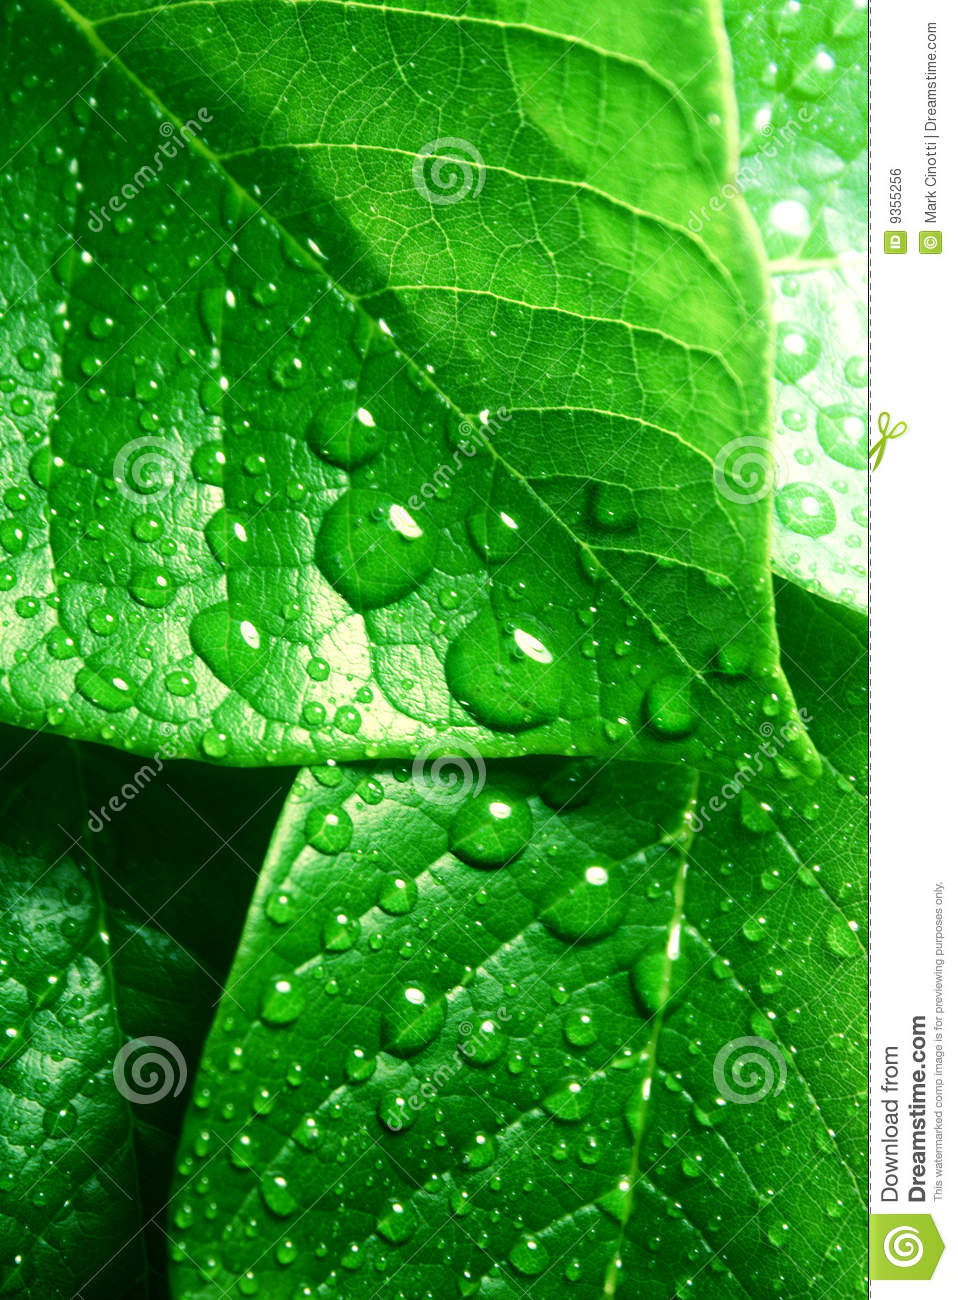 Clean fresh green leaves